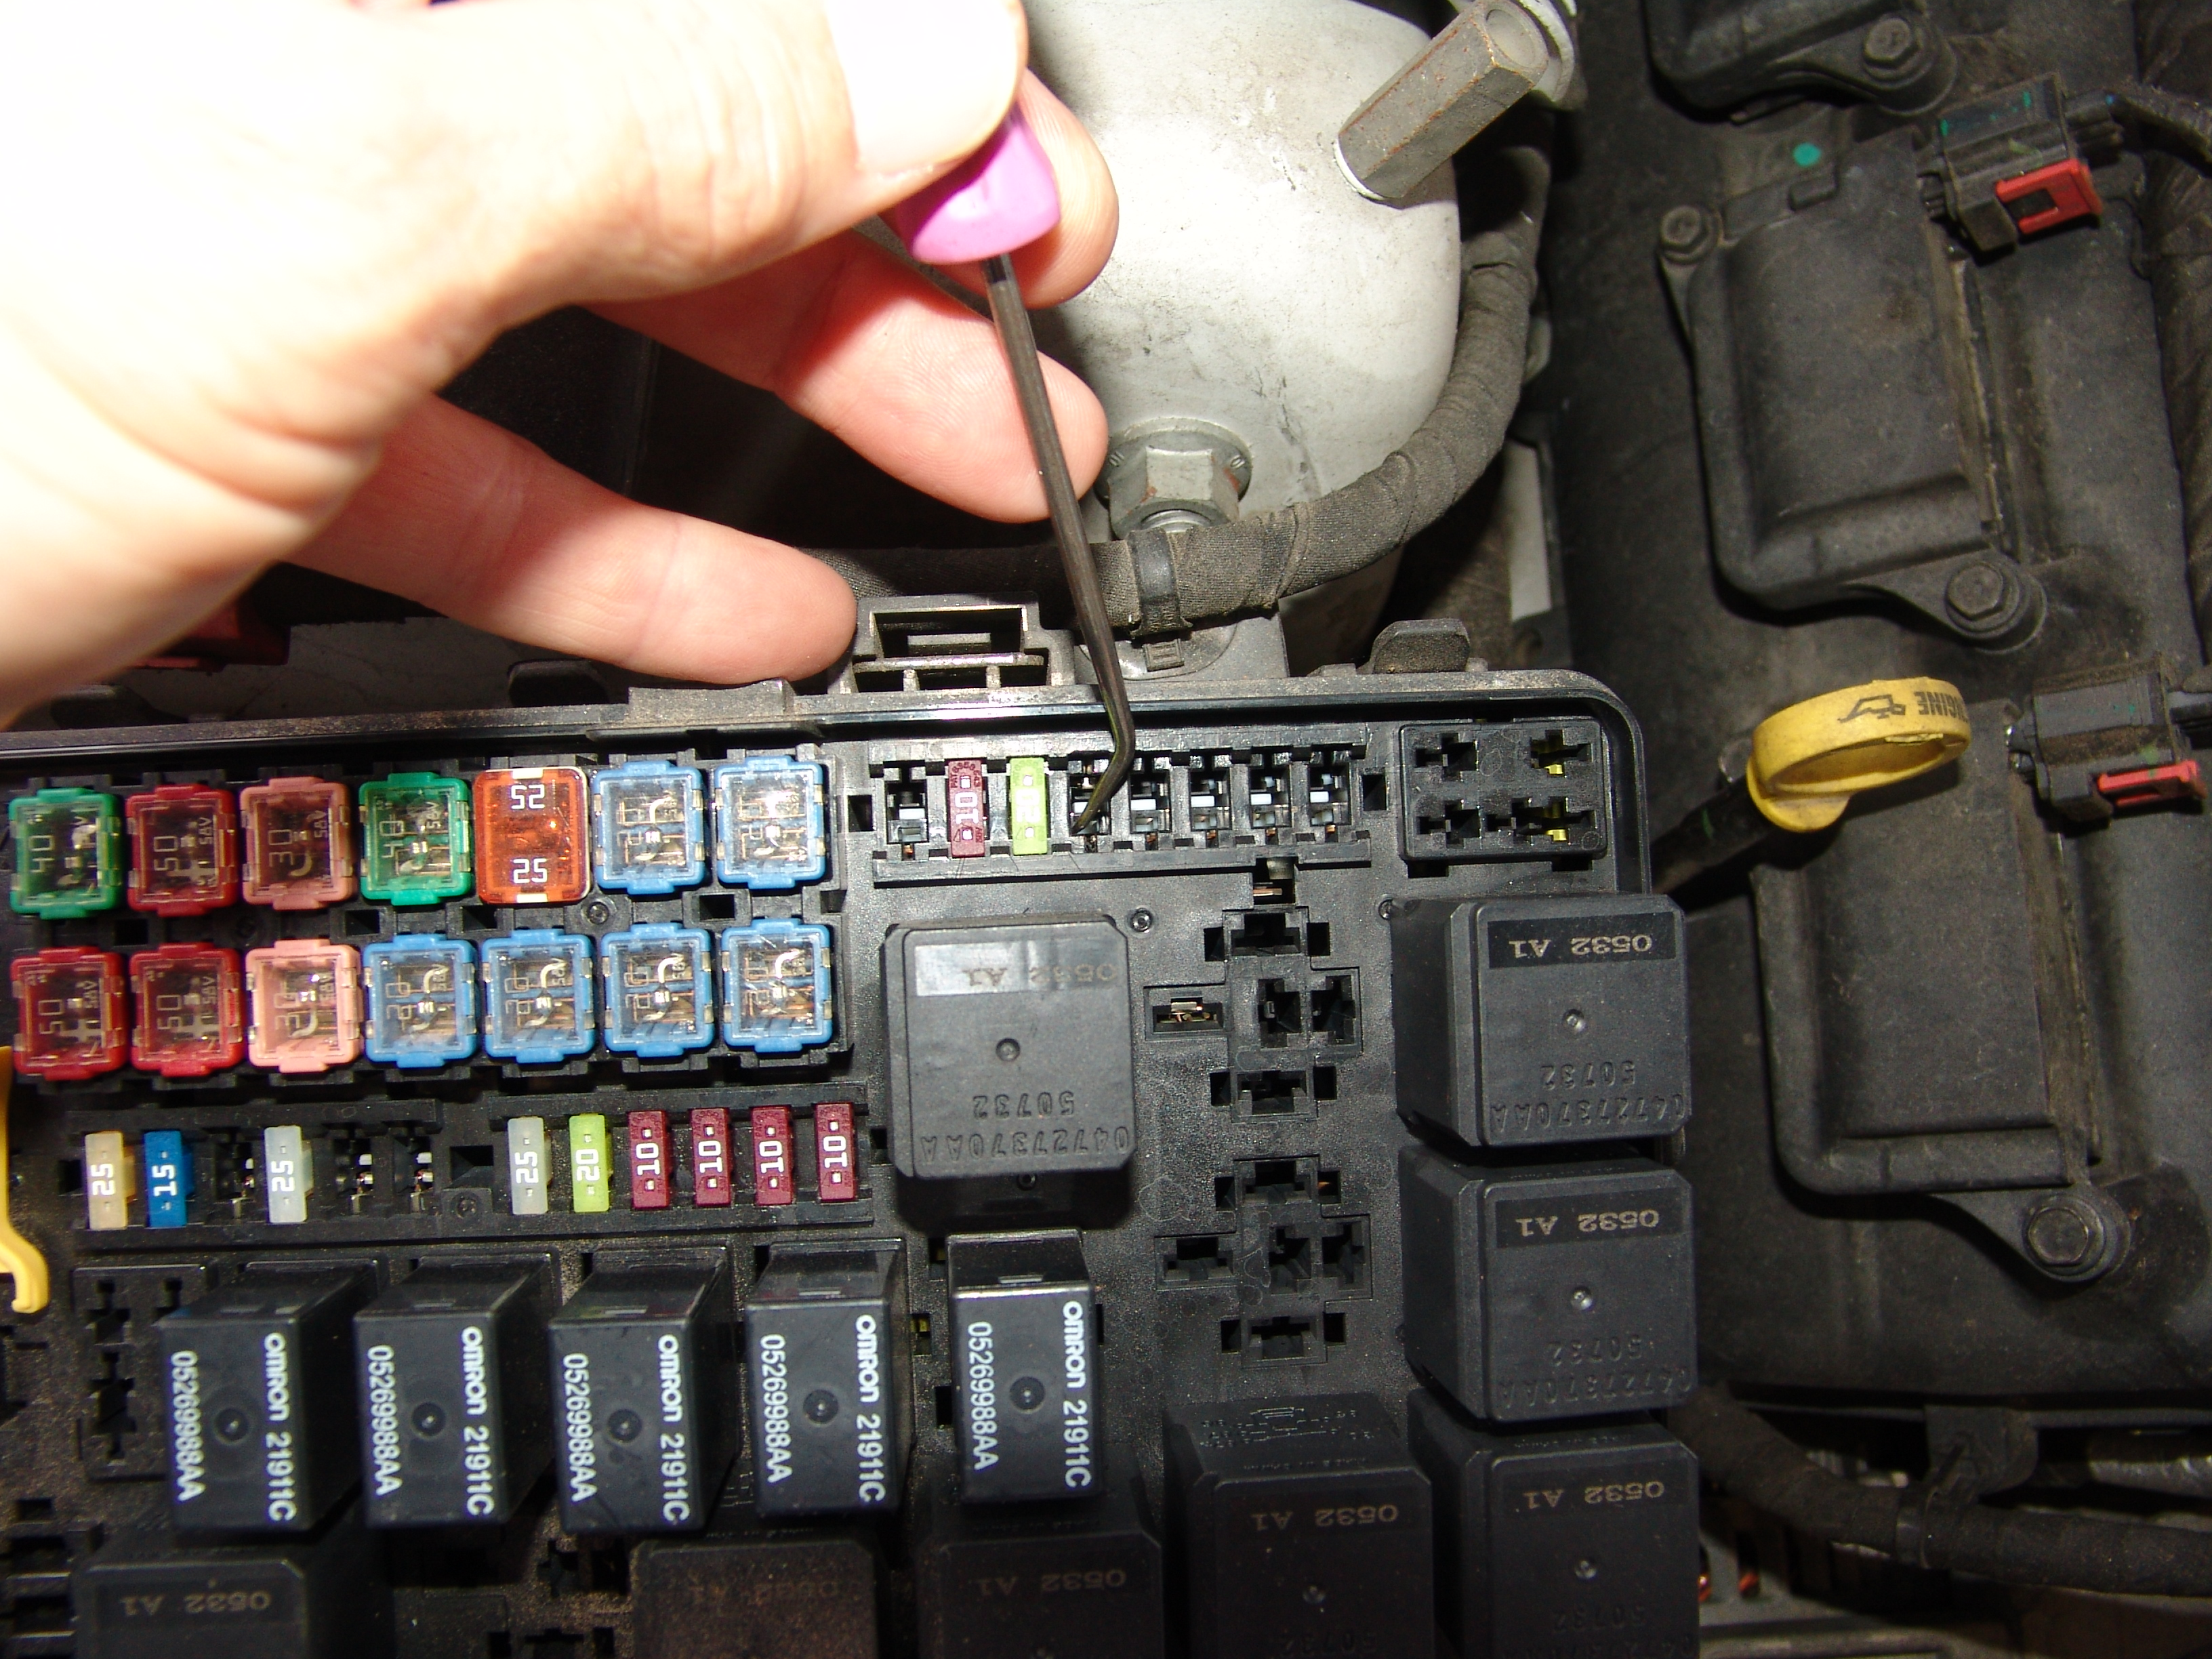 I also installed a new fuse. The best way to fix this is to install a new fuse  box assembly but the customer did not want to go that deep into this repair.